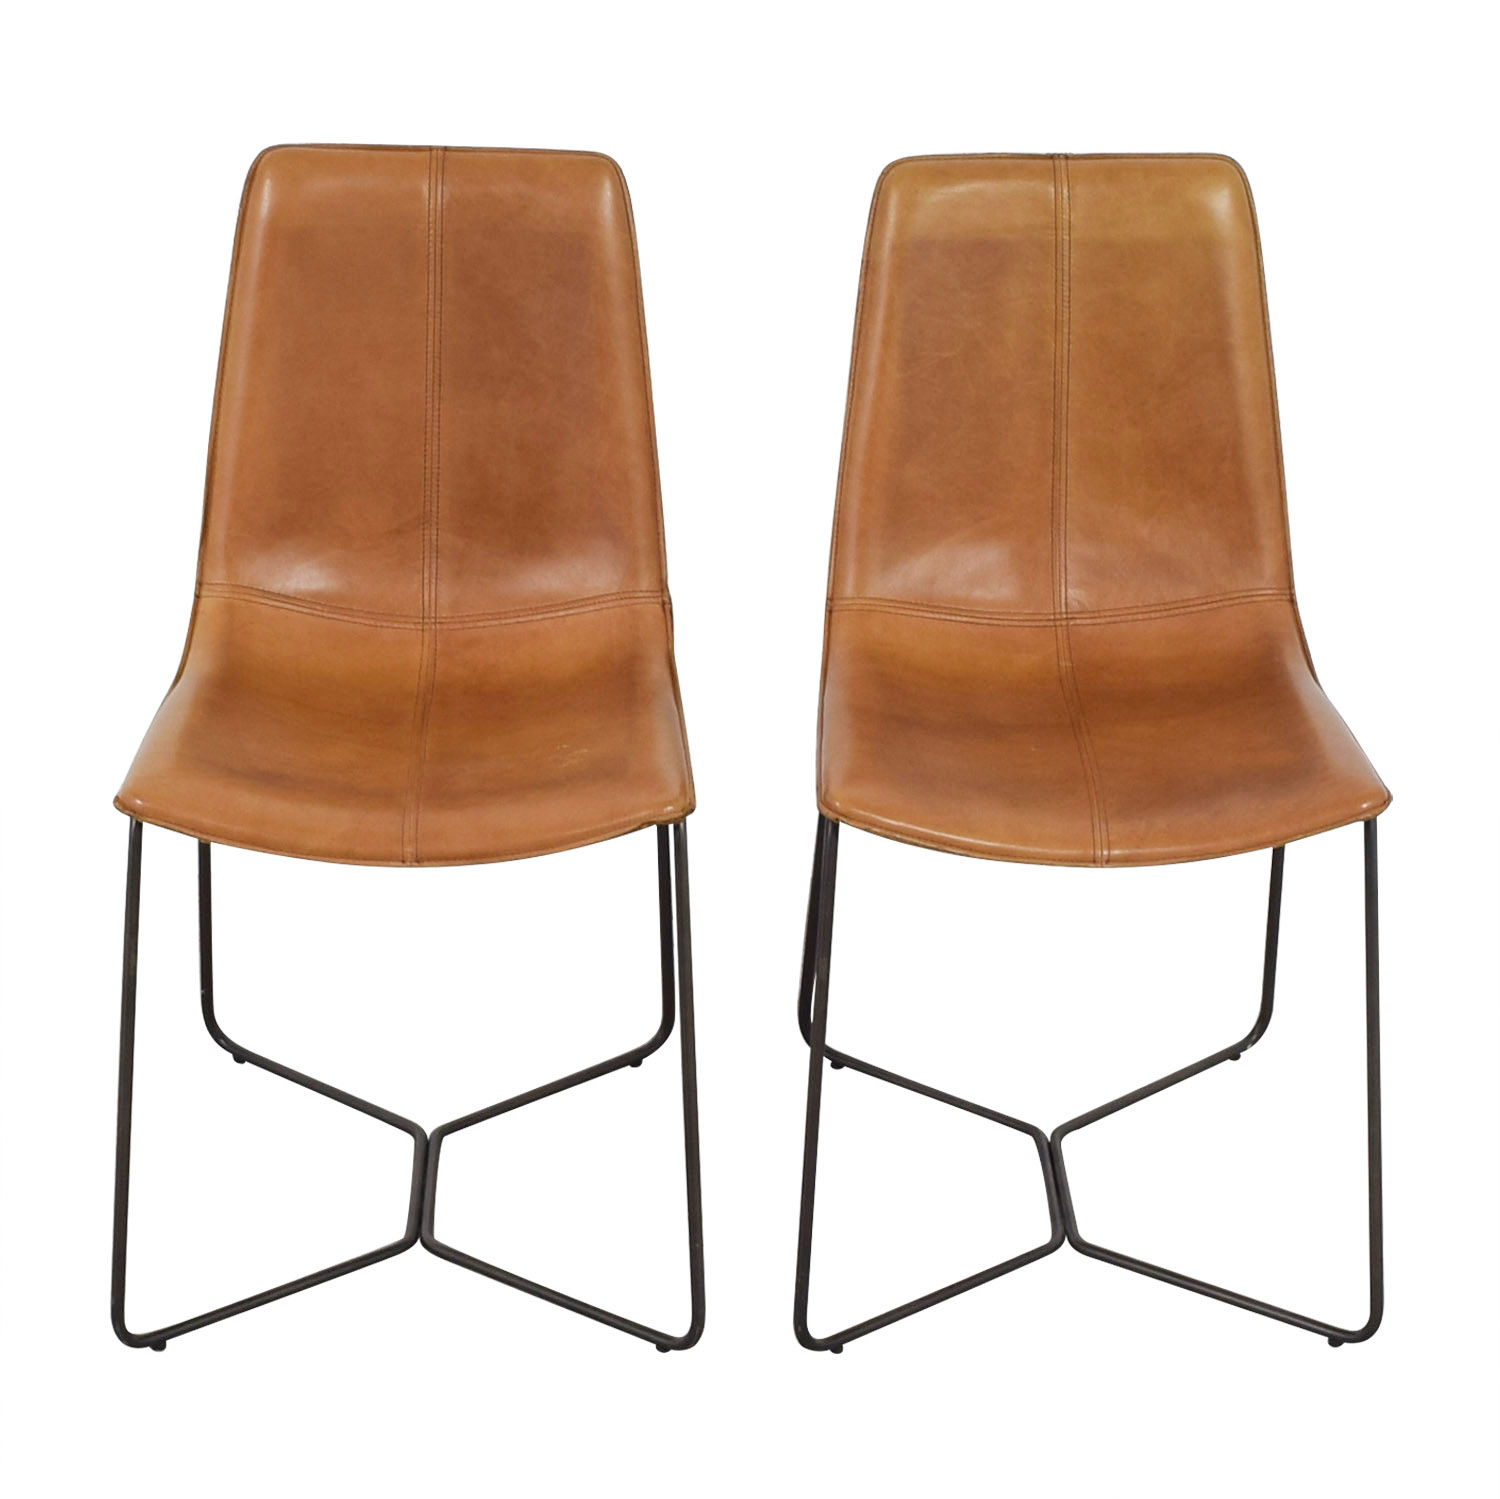 West Elm West Elm Leather Slope Dining Chairs dimensions